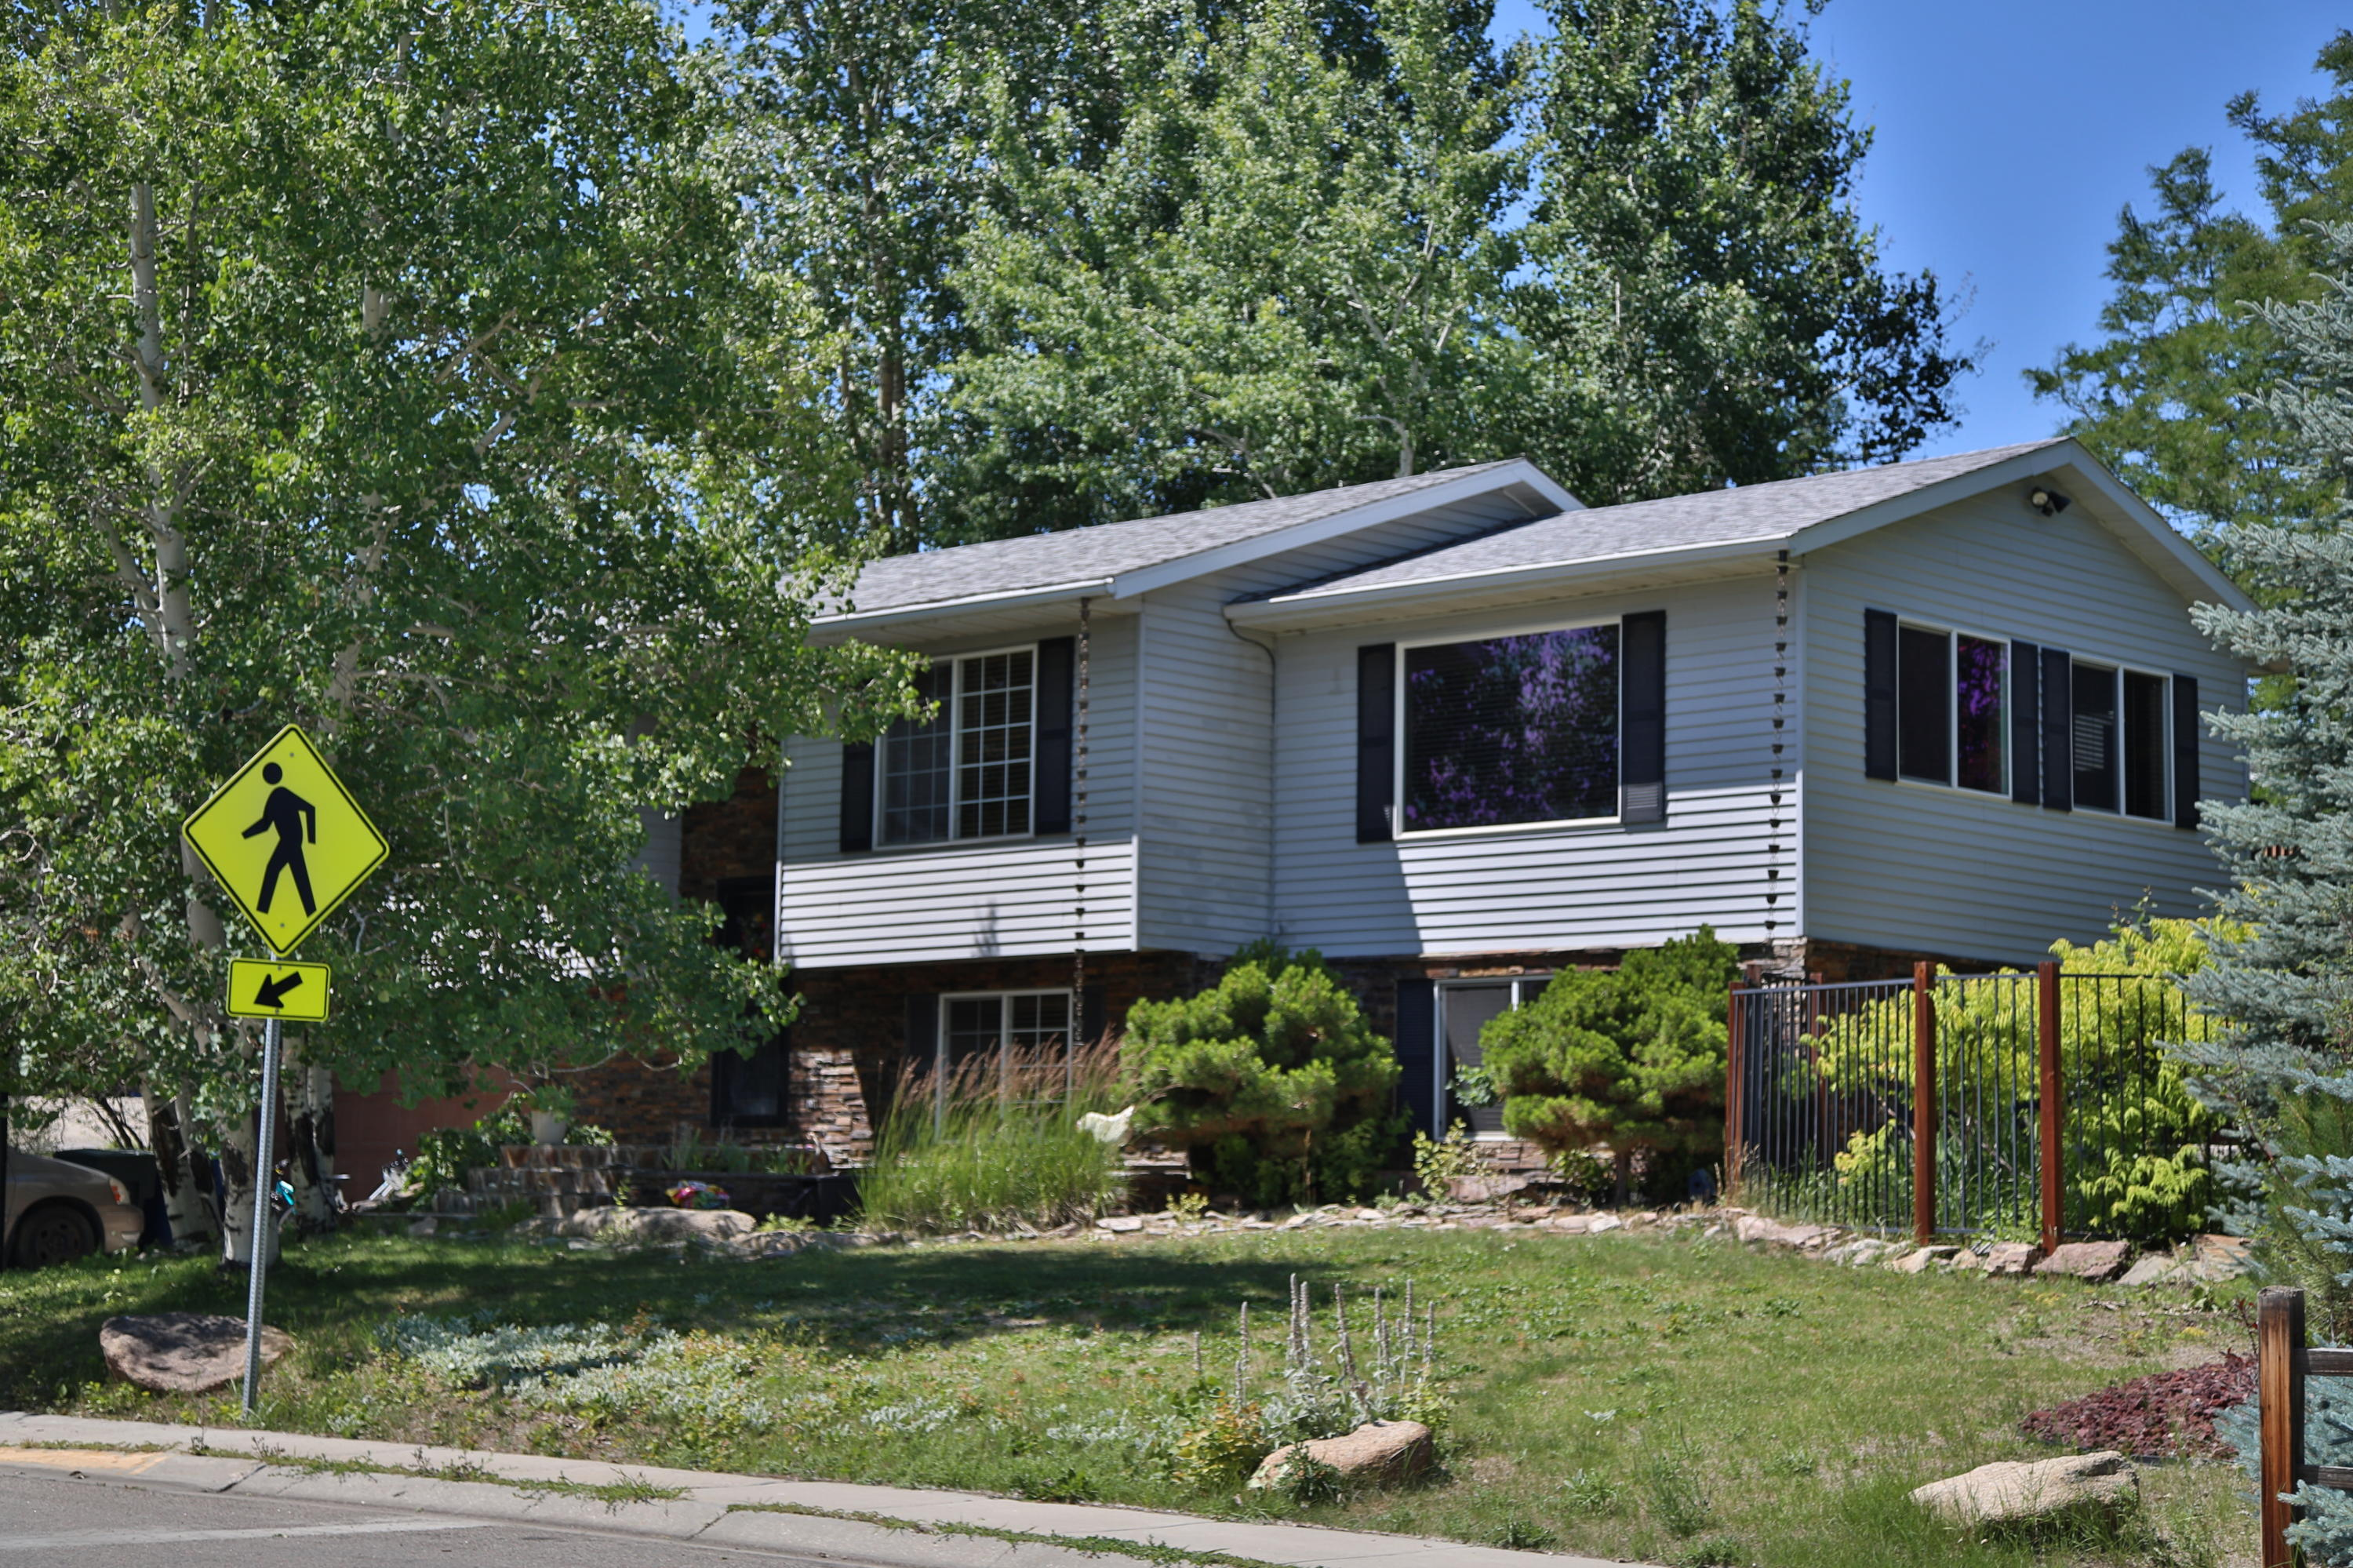 1991 Sparrow Hawk Road, Sheridan, Wyoming 82801, 5 Bedrooms Bedrooms, ,3 BathroomsBathrooms,Residential,For Sale,Sparrow Hawk,20-607